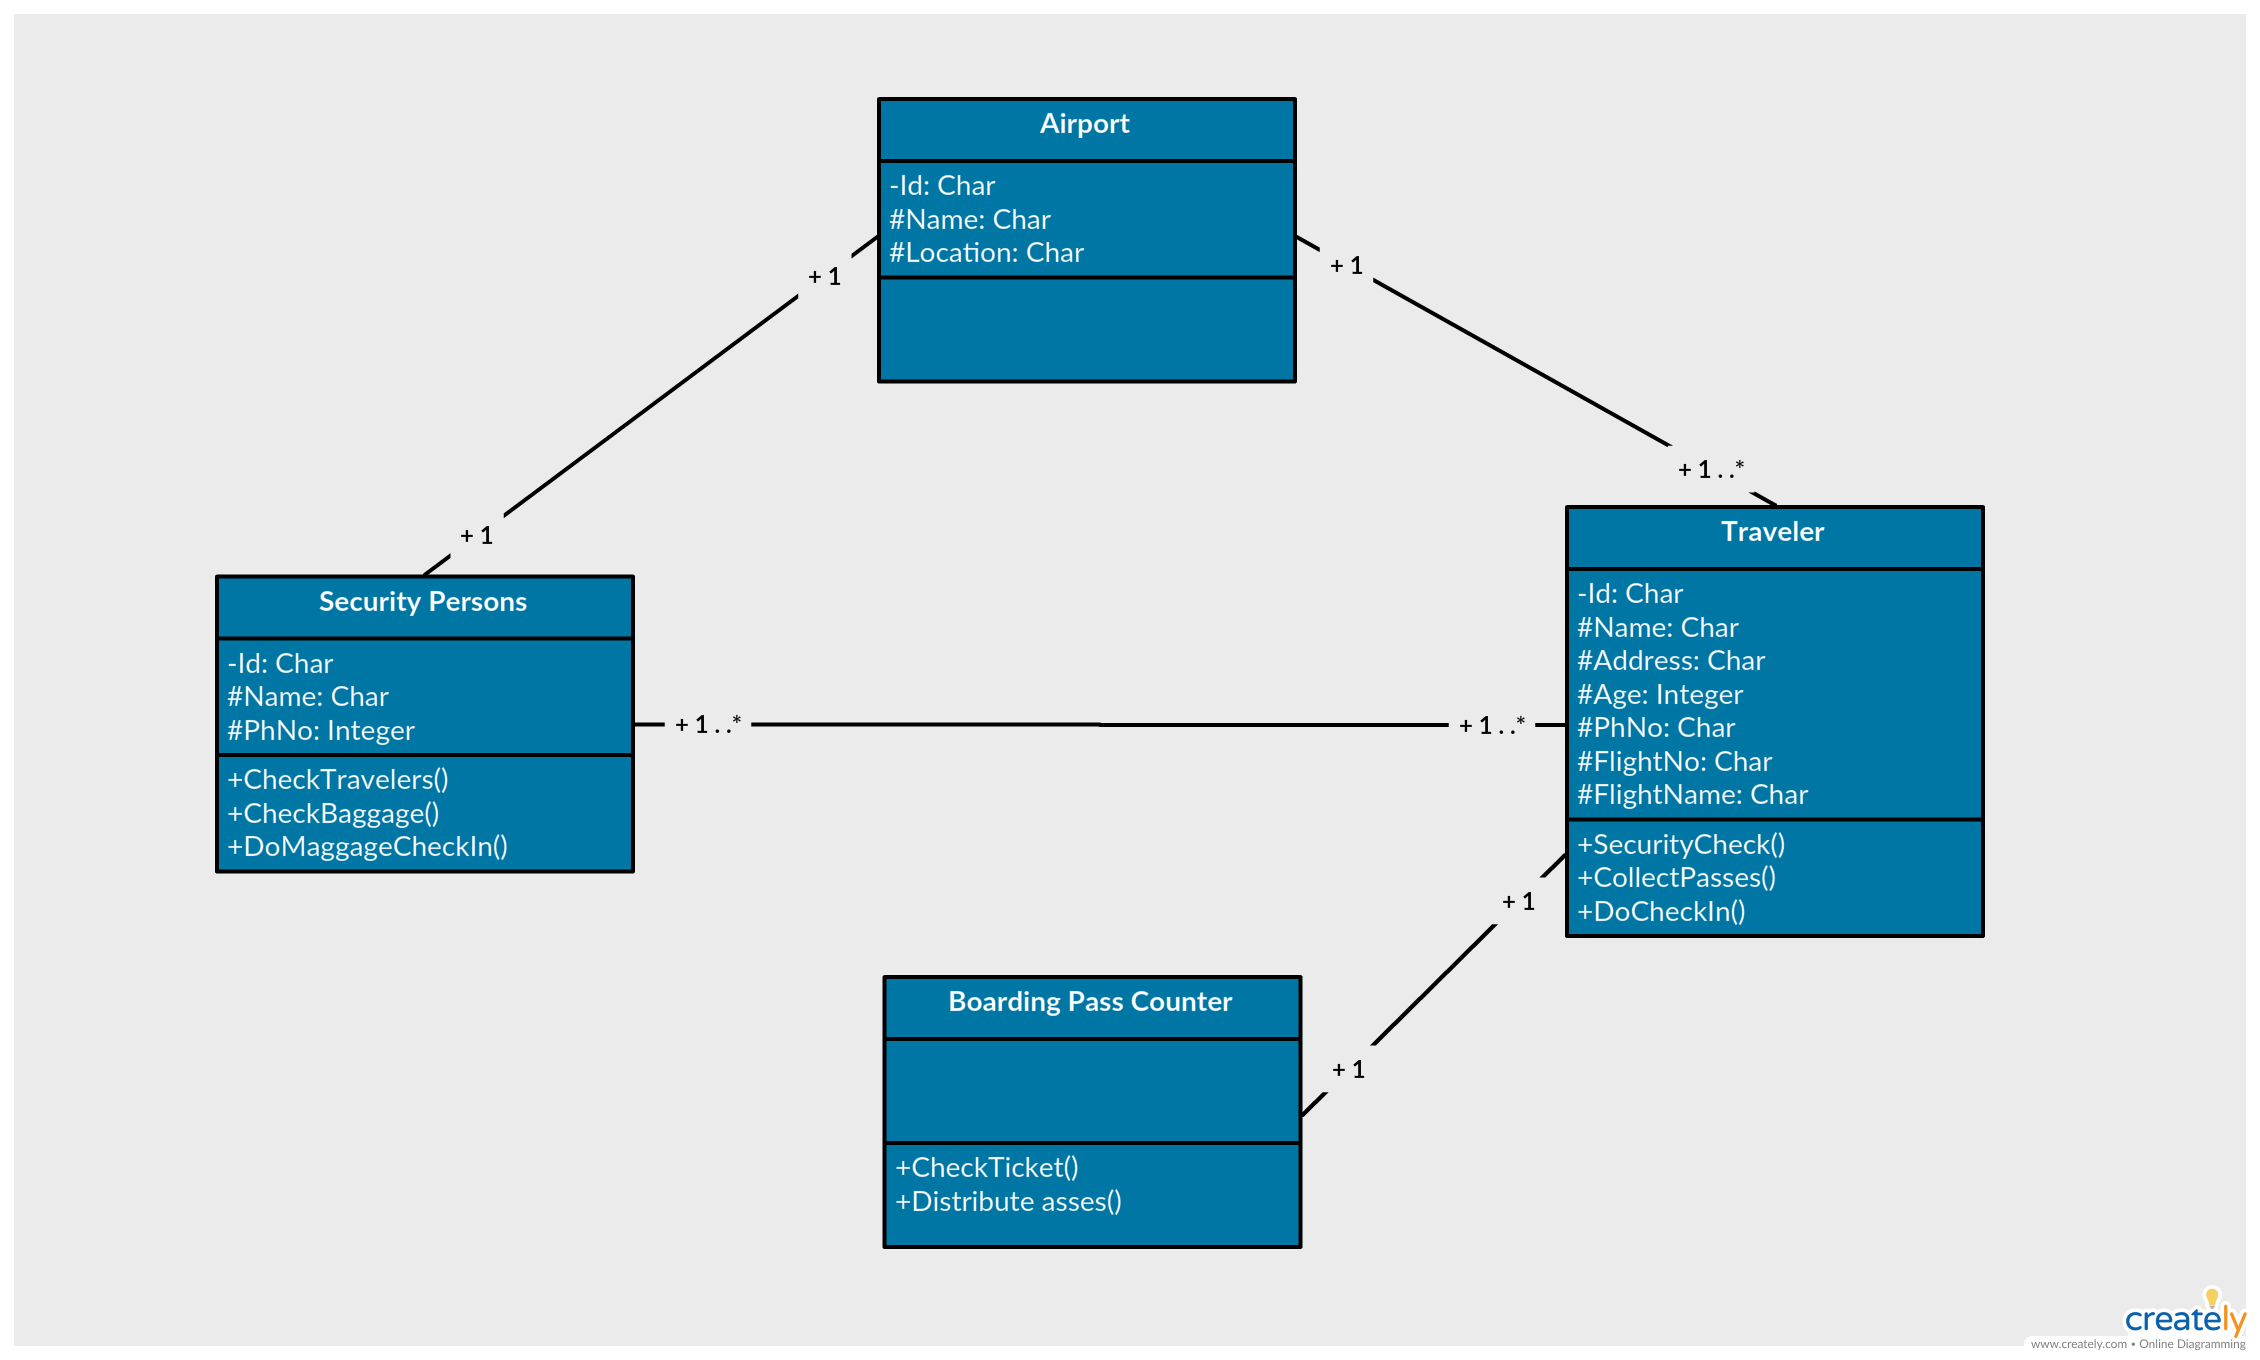 hight resolution of uml class diagram example airport security and checkin system class diagram template to modify as per your requirement click on the image and use this